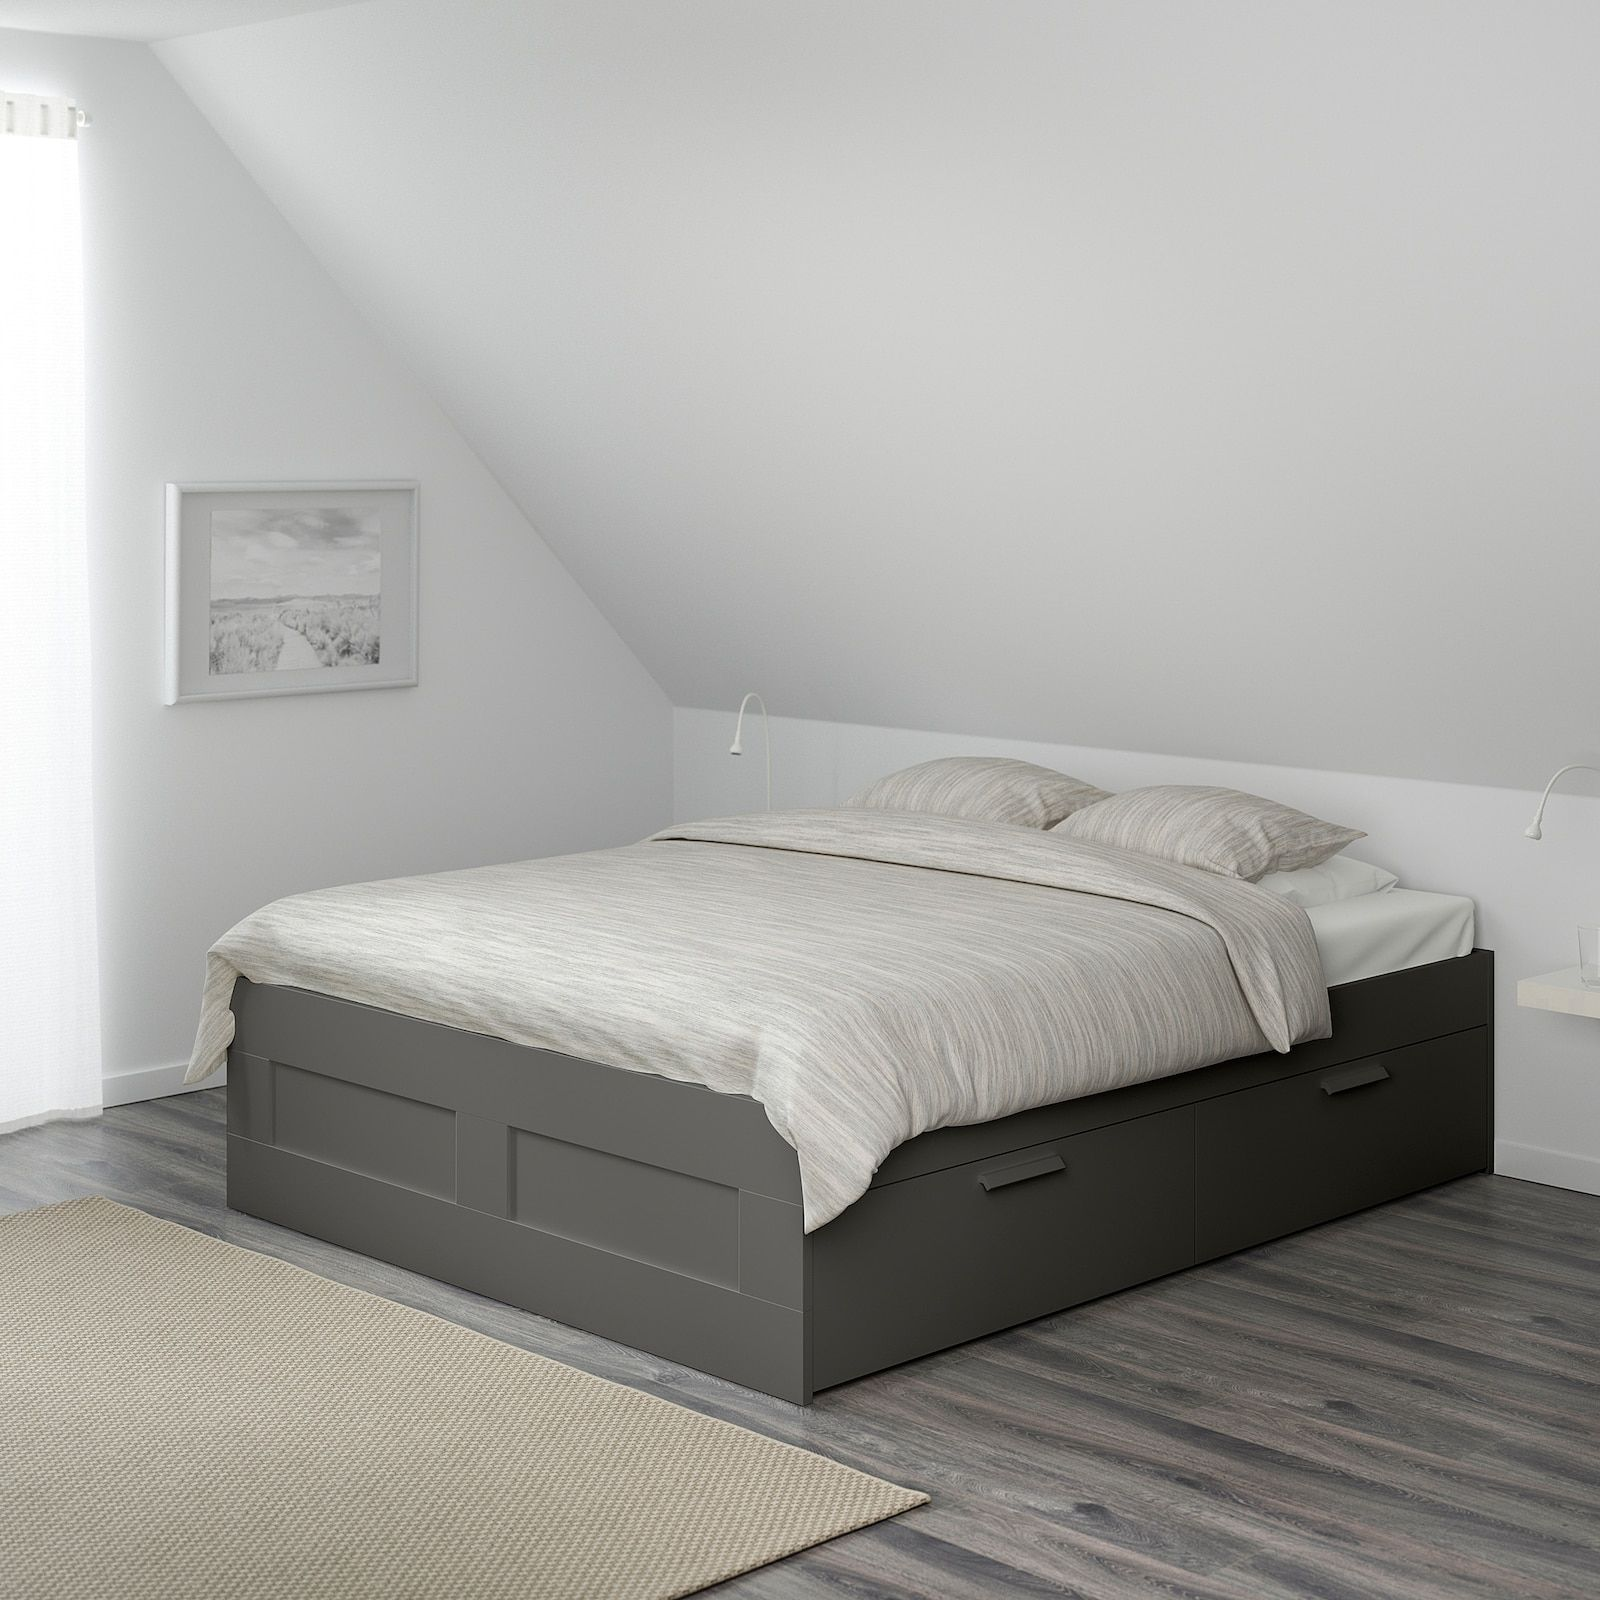 Brimnes Bed Frame With Storage Gray King Ikea In 2020 Bed Frame With Storage Grey Bed Frame Bed Frame